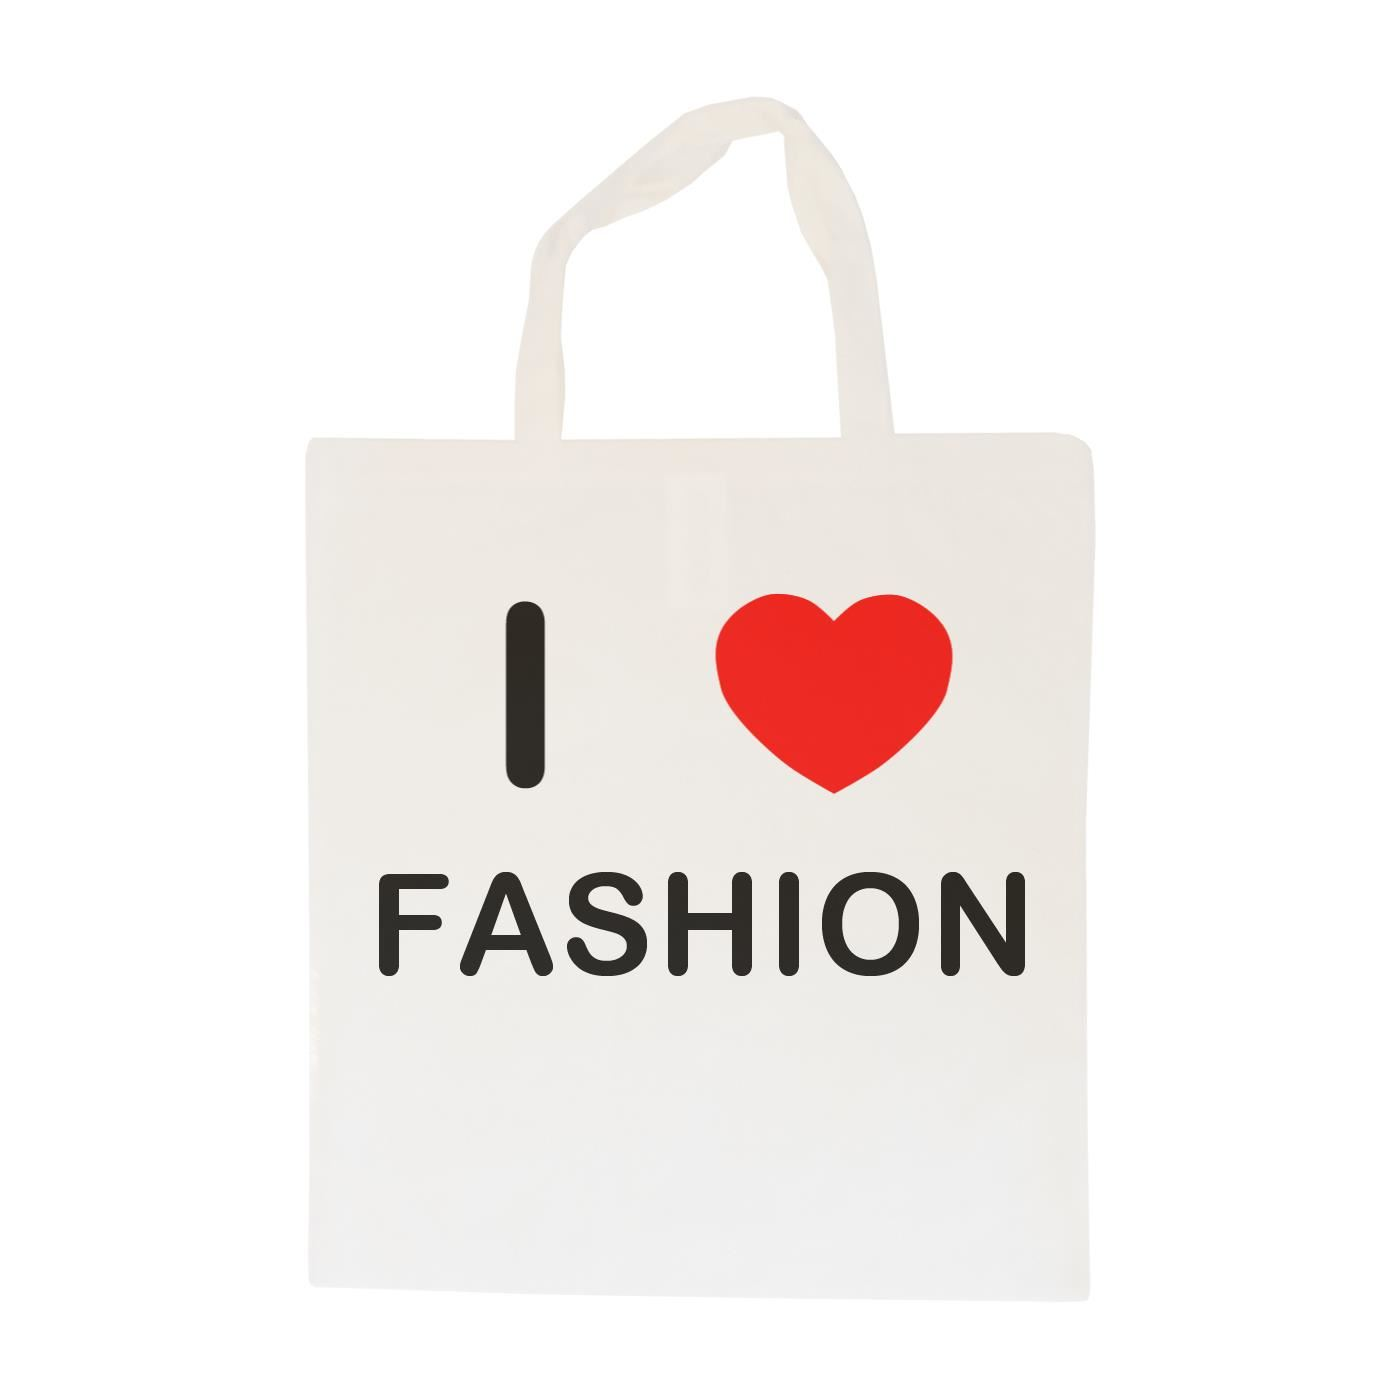 Miss Lulu - Totes and Shoppers - For Retail Therapists Fashion totes and shoppers